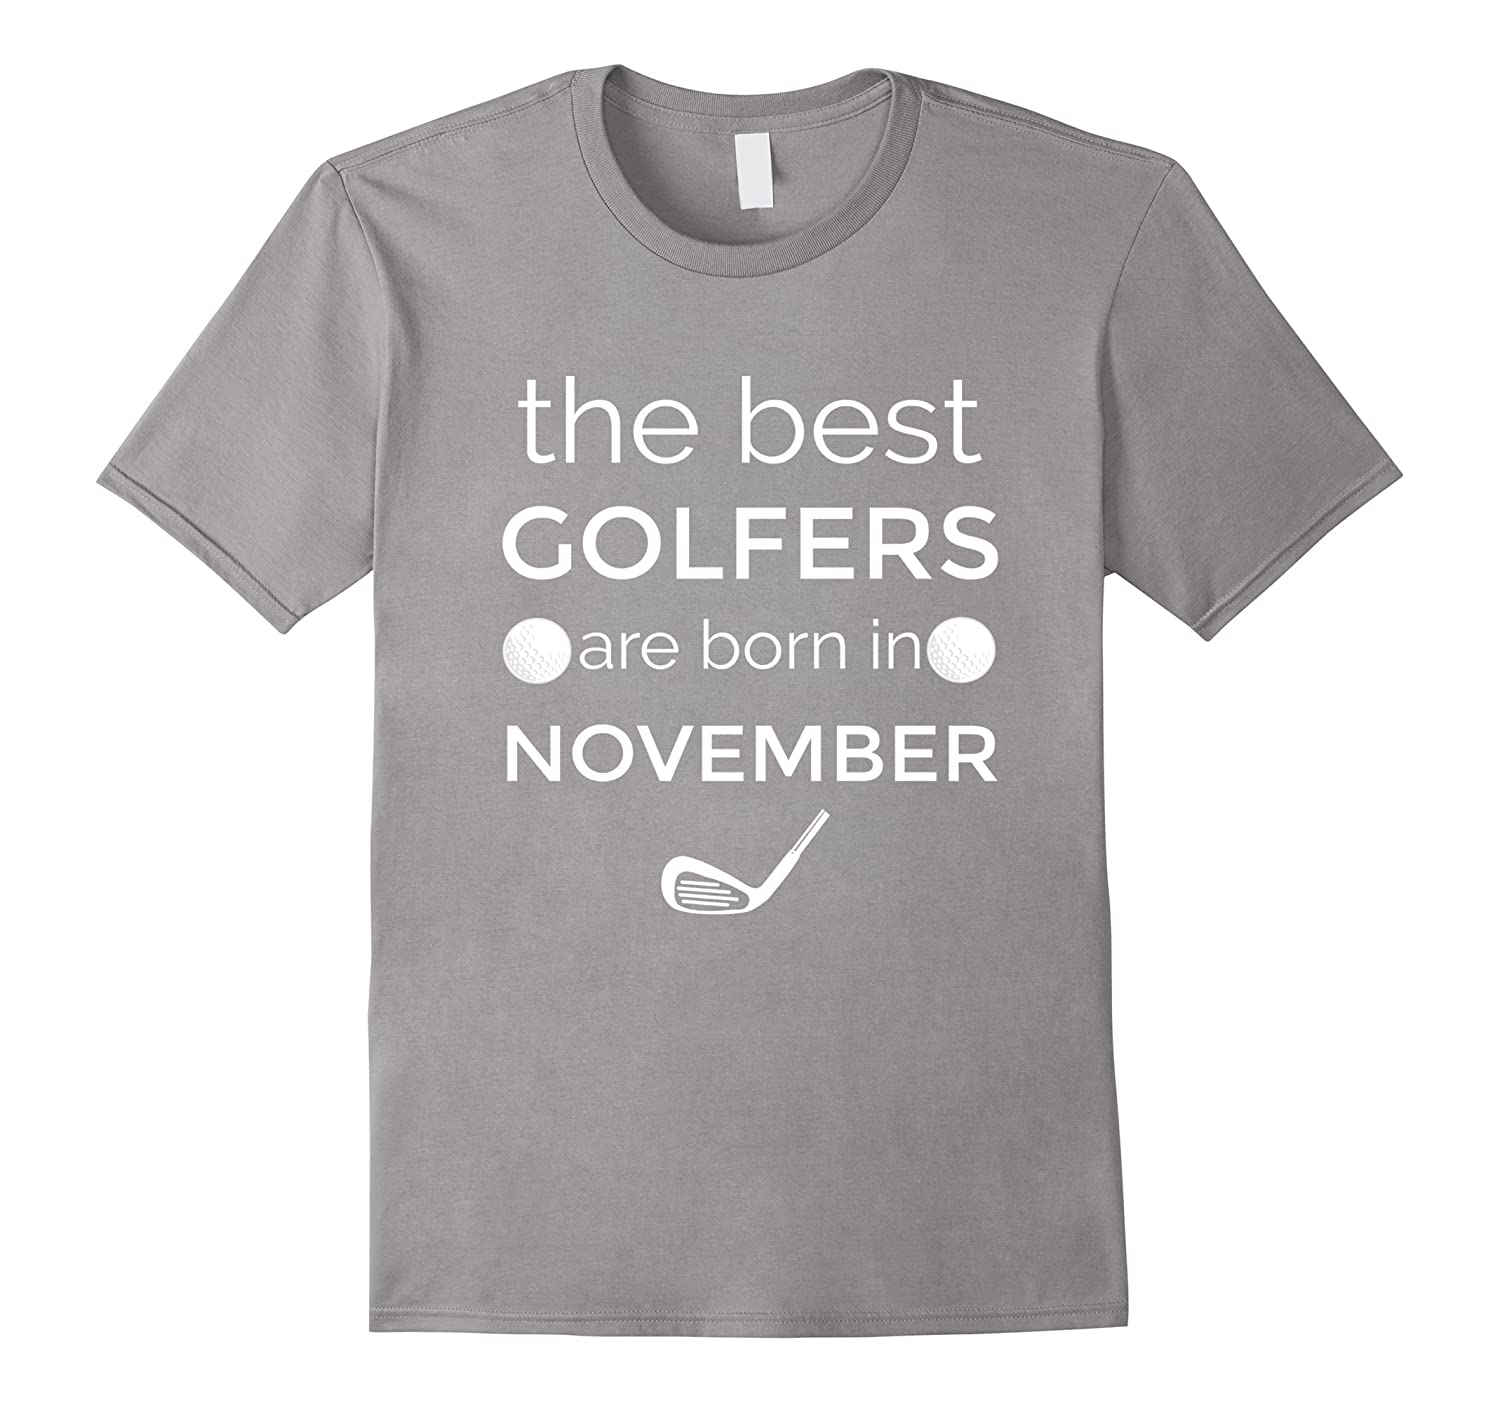 Golf Shirts For Men November Birthday Shirt Dad Gifts ANZ